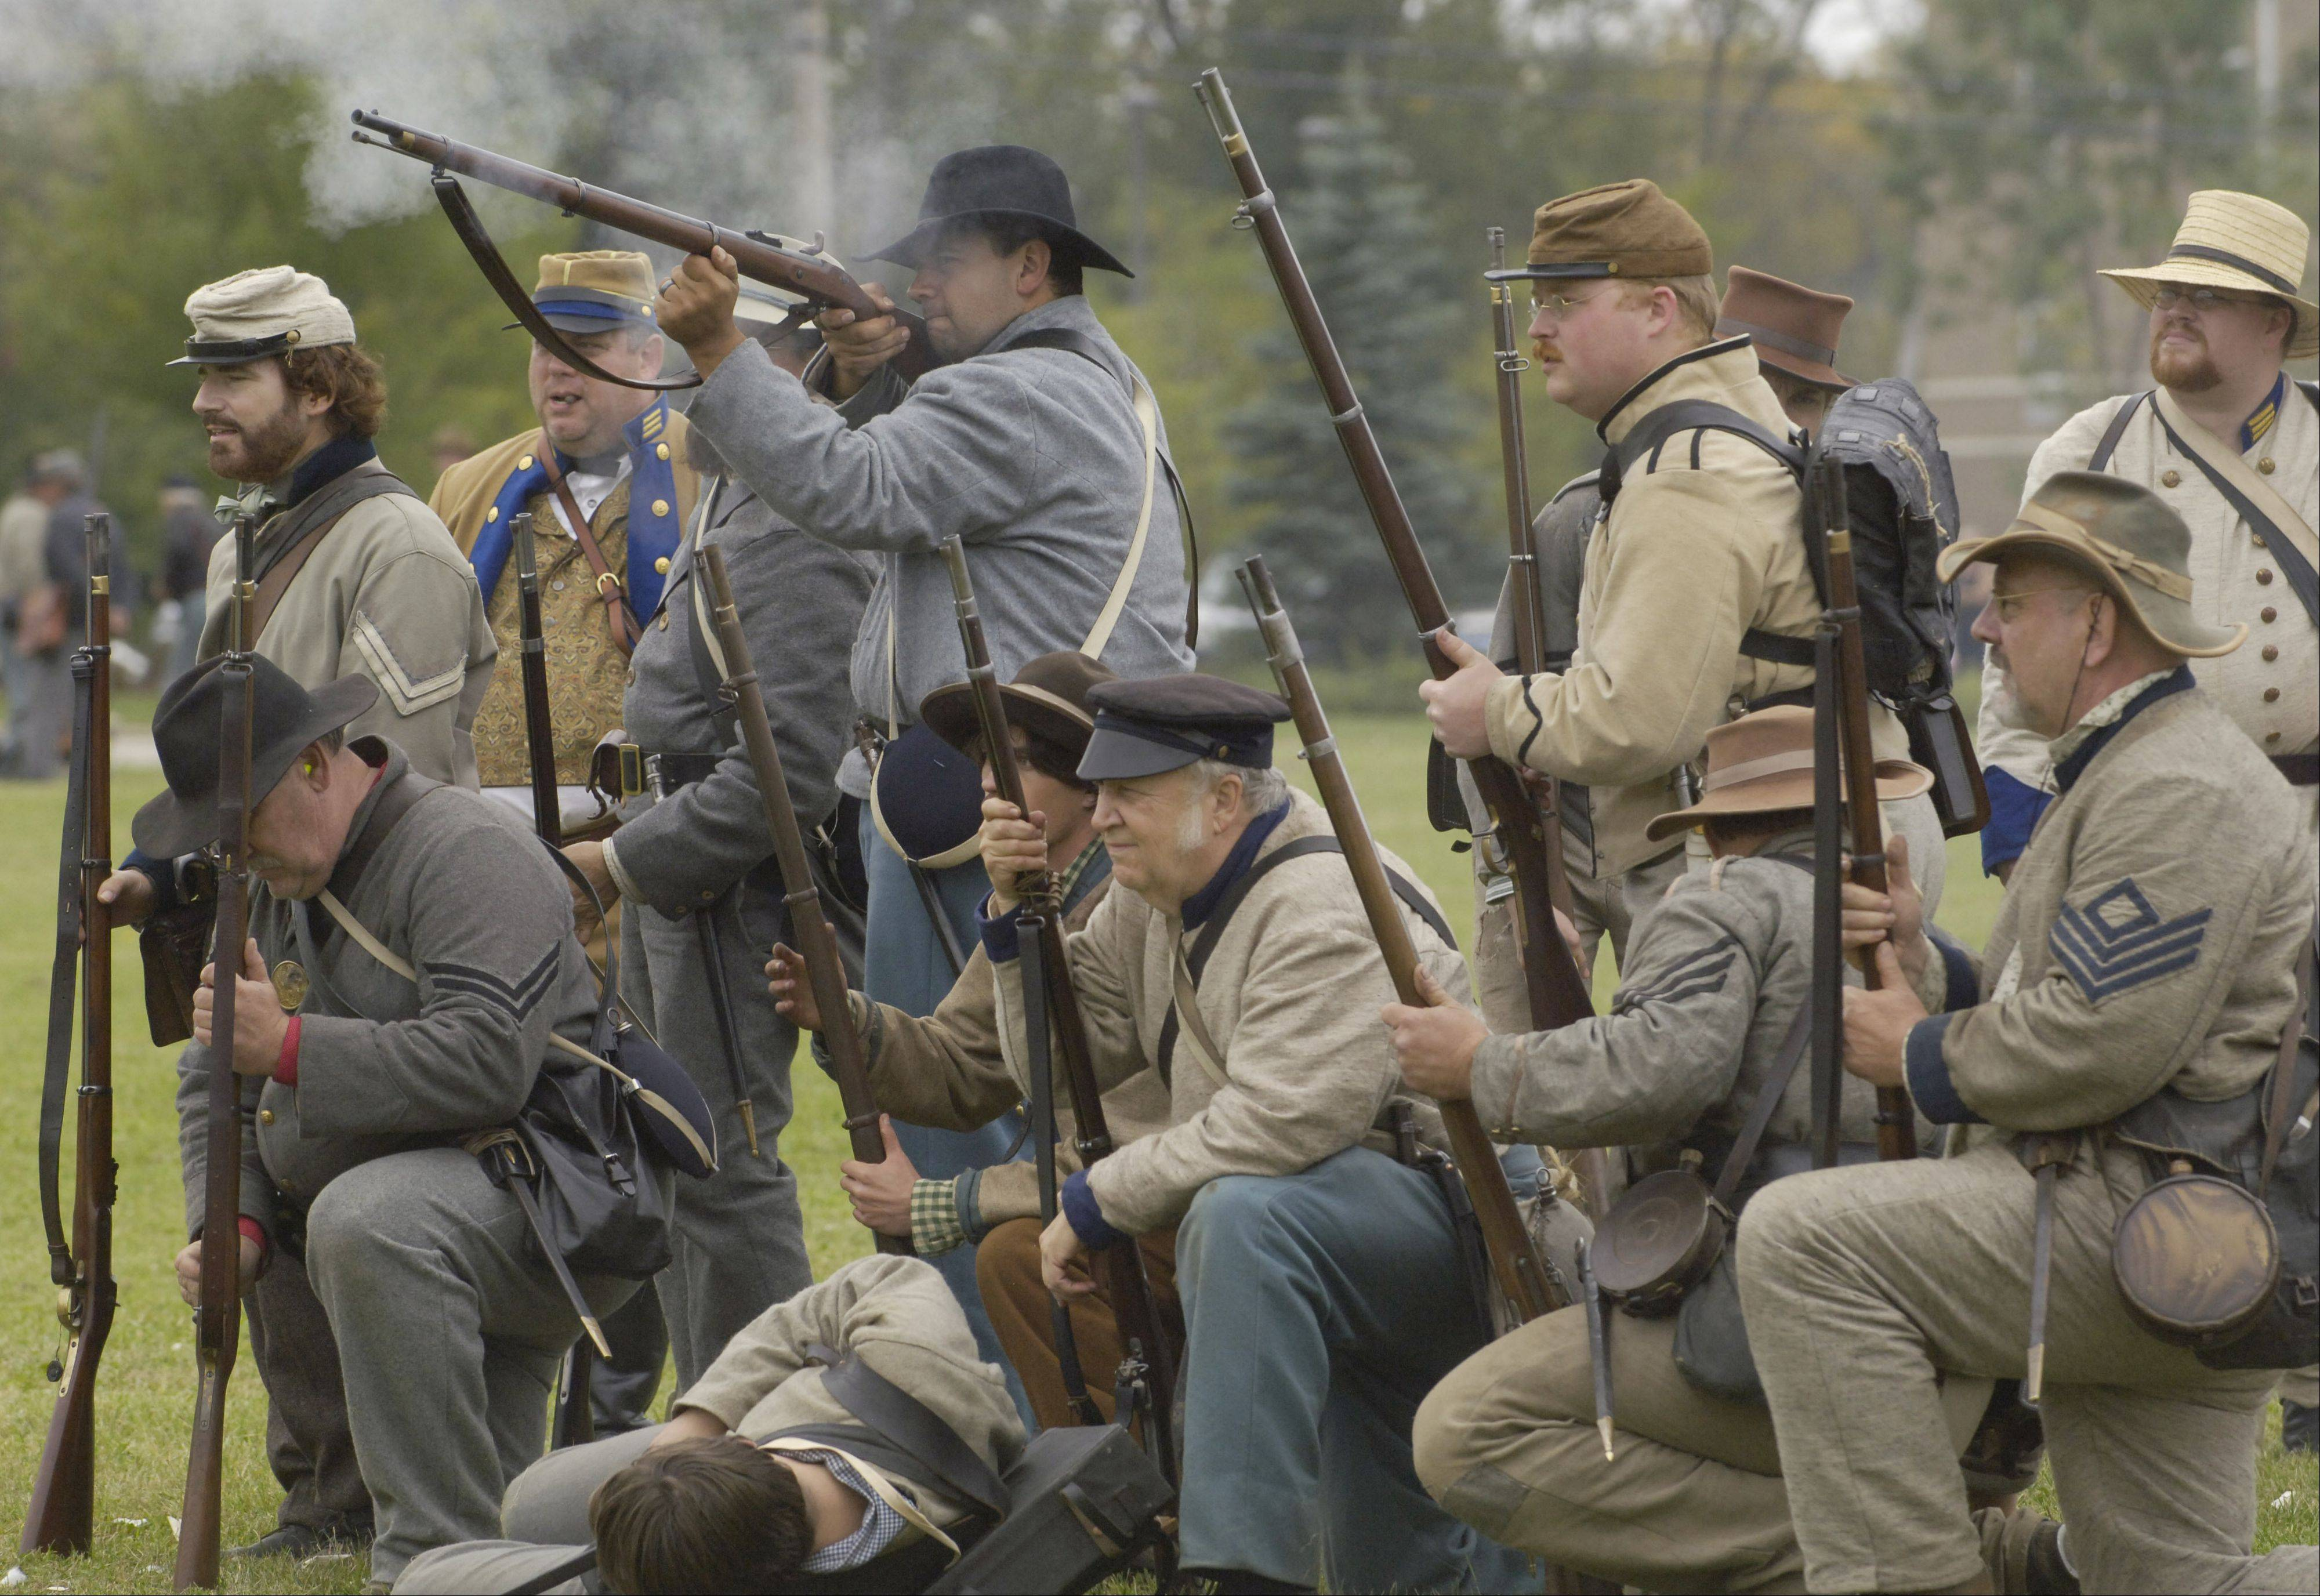 Confederate troops fire on Union positions in a battle re-enactment during Civil War Days at Lehmann Mansion in Lake Villa.